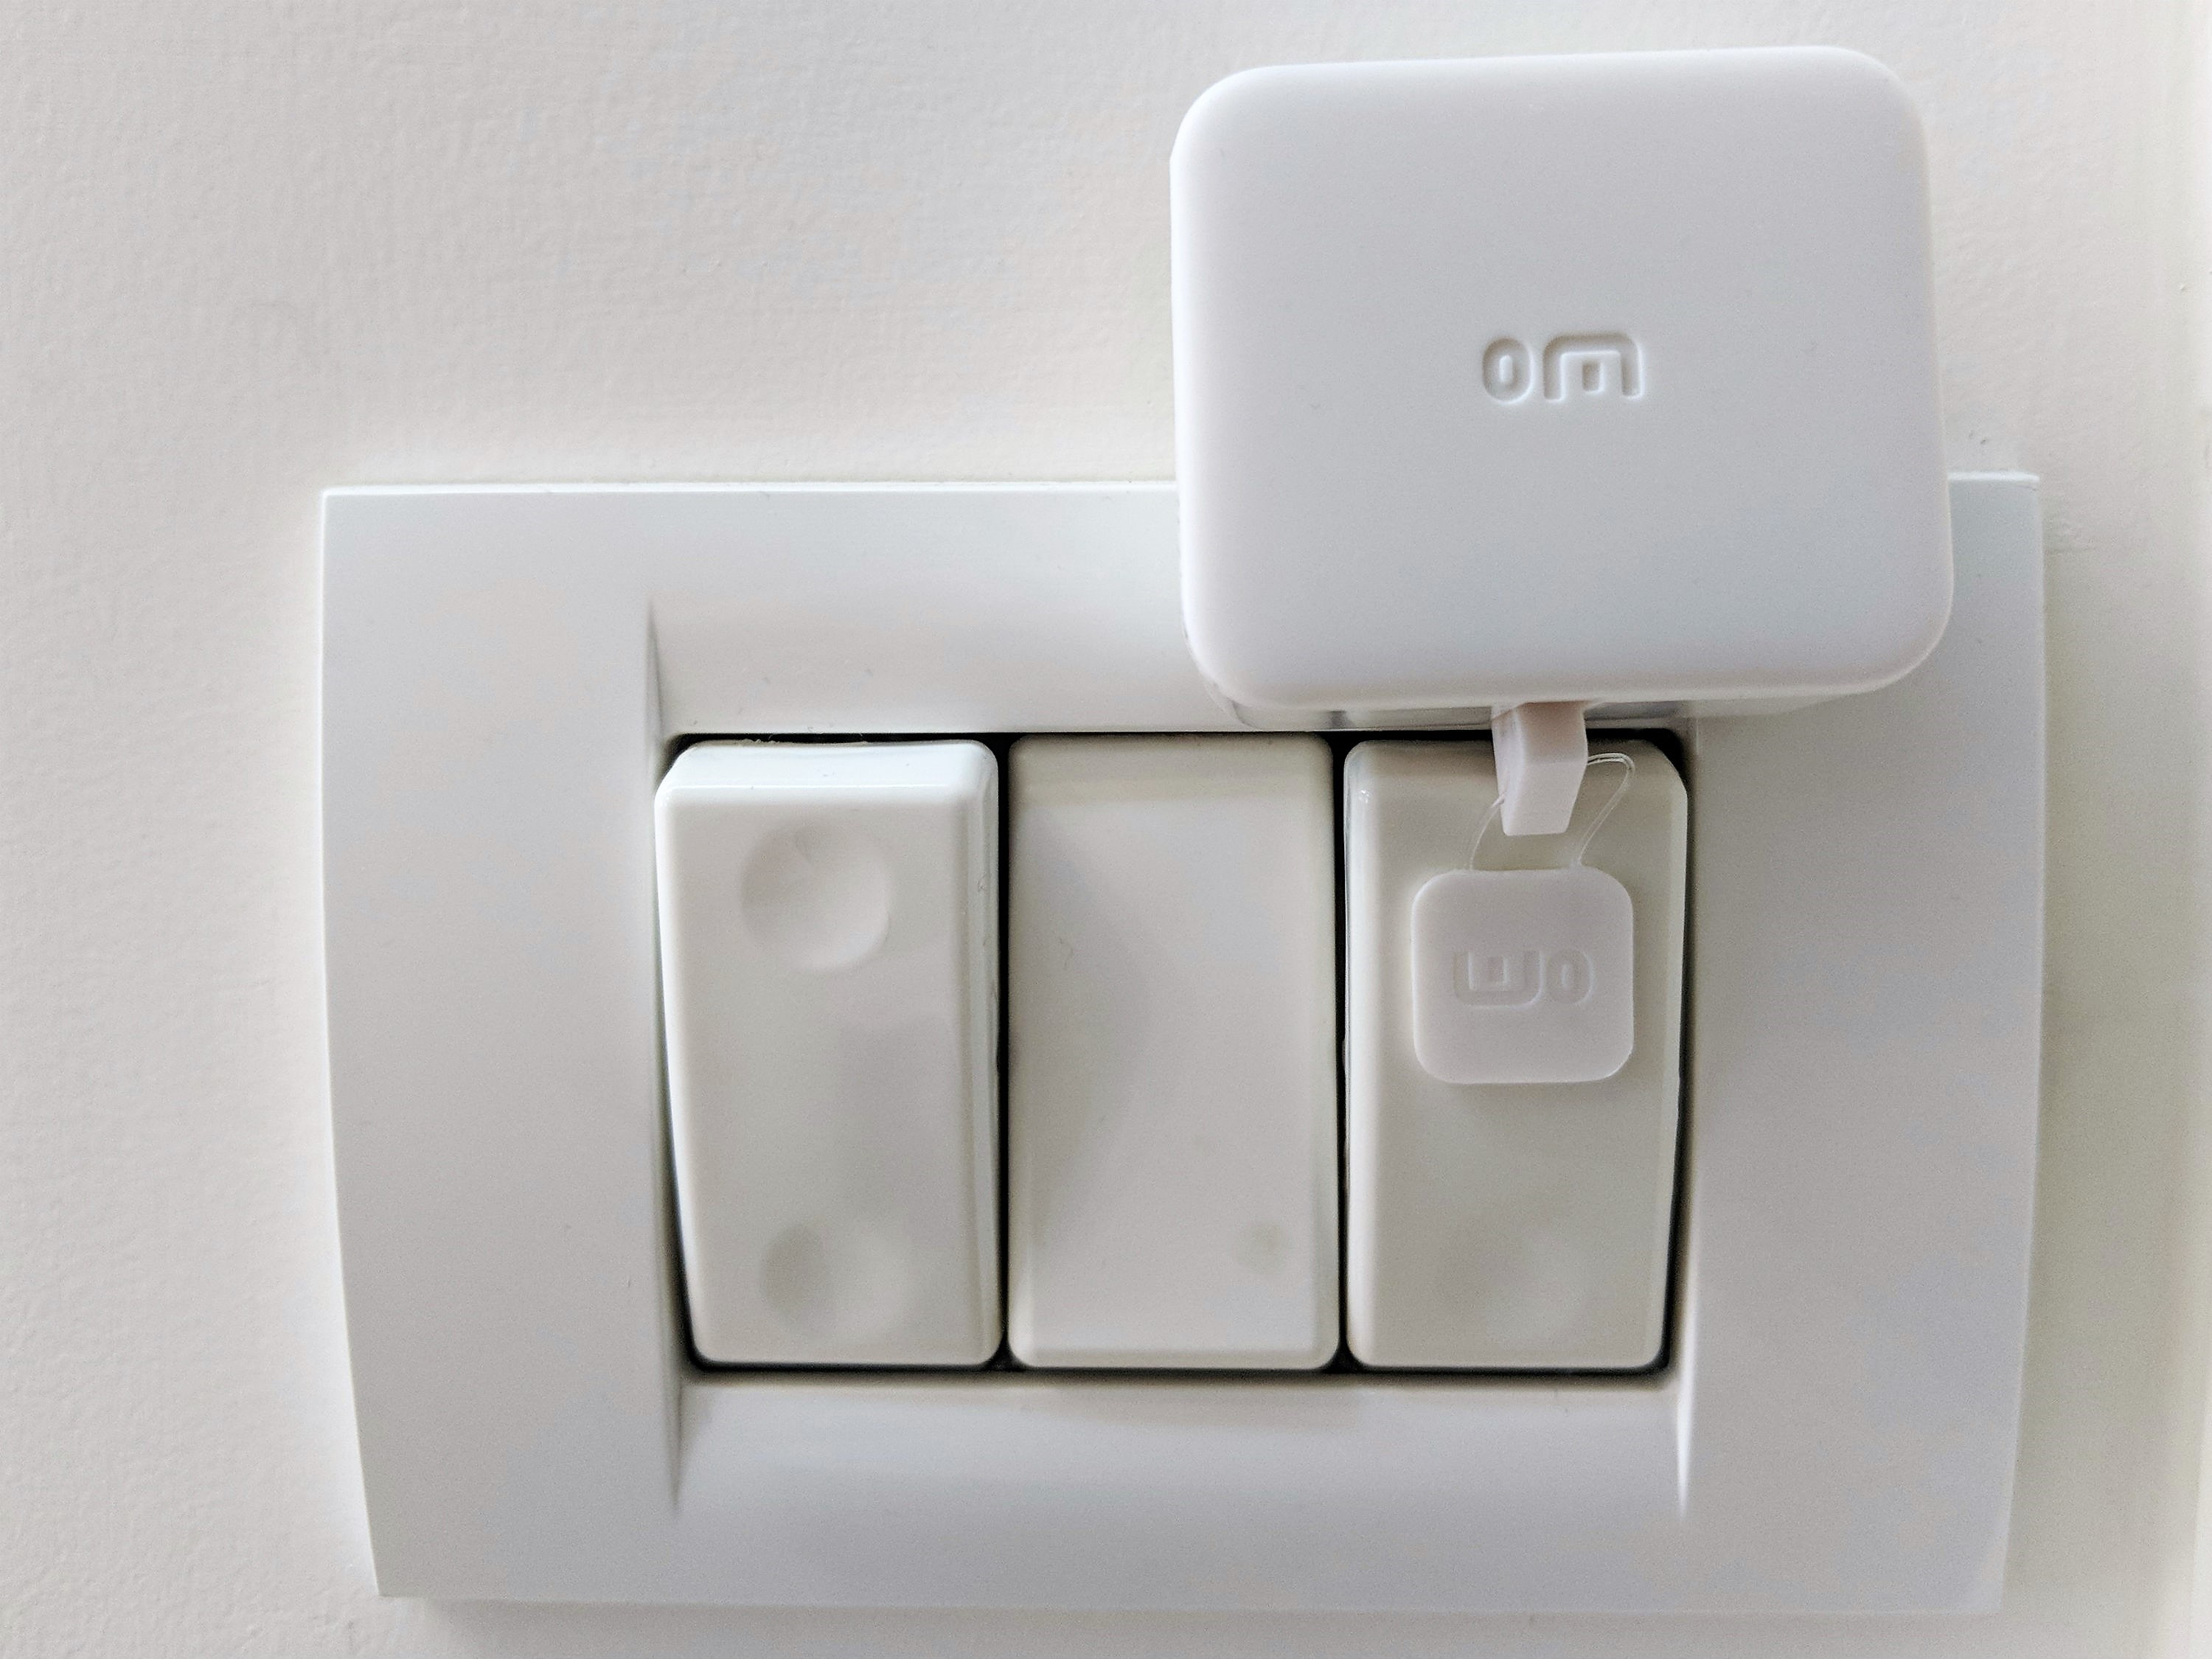 Switchbot Review Simple Automation For Any Switch Or Button In Your Smart Light Switches Require No Wiring Gizmodo Australia The Bot Comes With Two 3m Stickers So You Still Have A Back Up Plan Case Install It Somewhere And Would Rather Change That Later